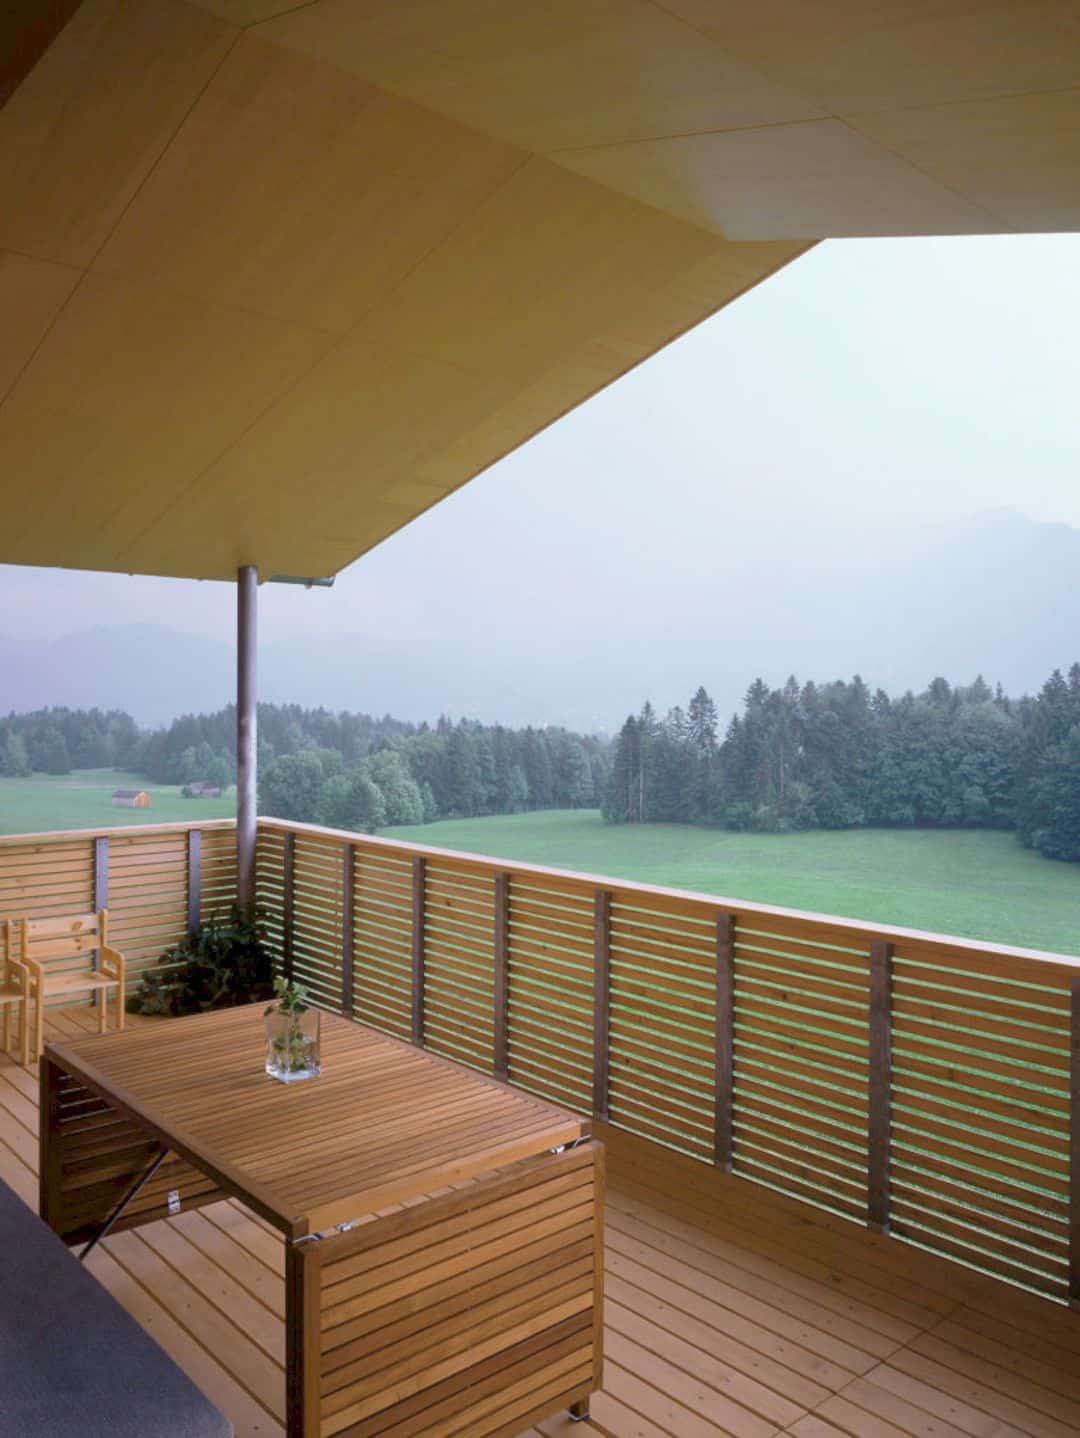 Home I, Schwarzenberg (AT): An Unstructured Barn Like Solitaire With Wooden